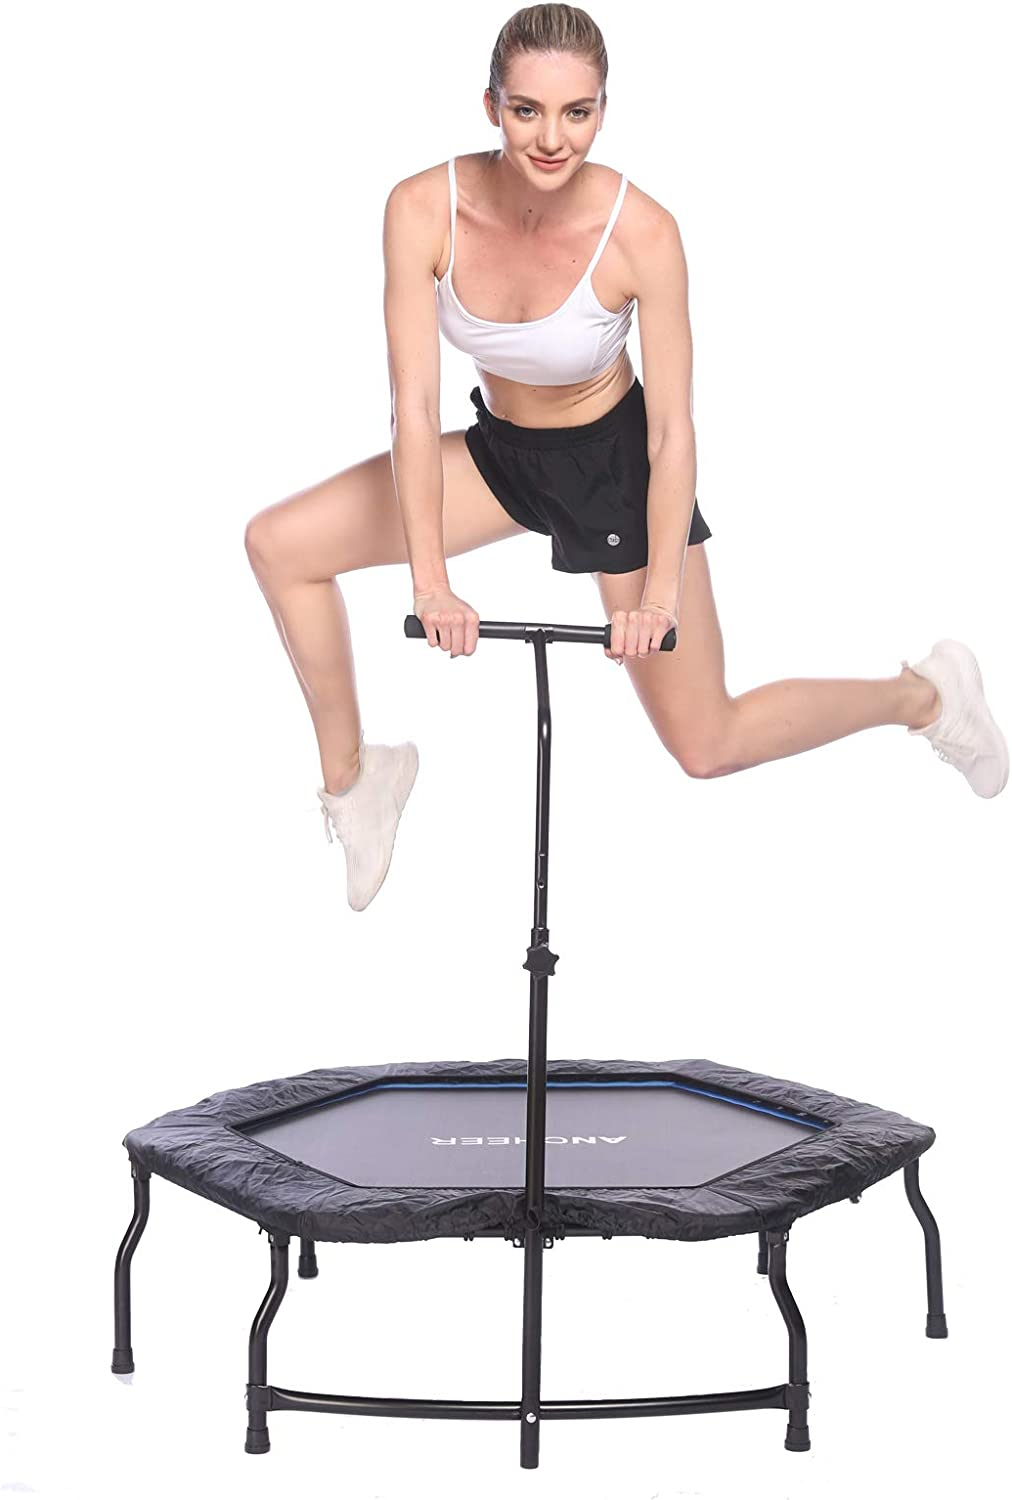 ANCHEER Mini Trampoline Quiet Nippon regular agency Rebo Safe Foldable Very popular and